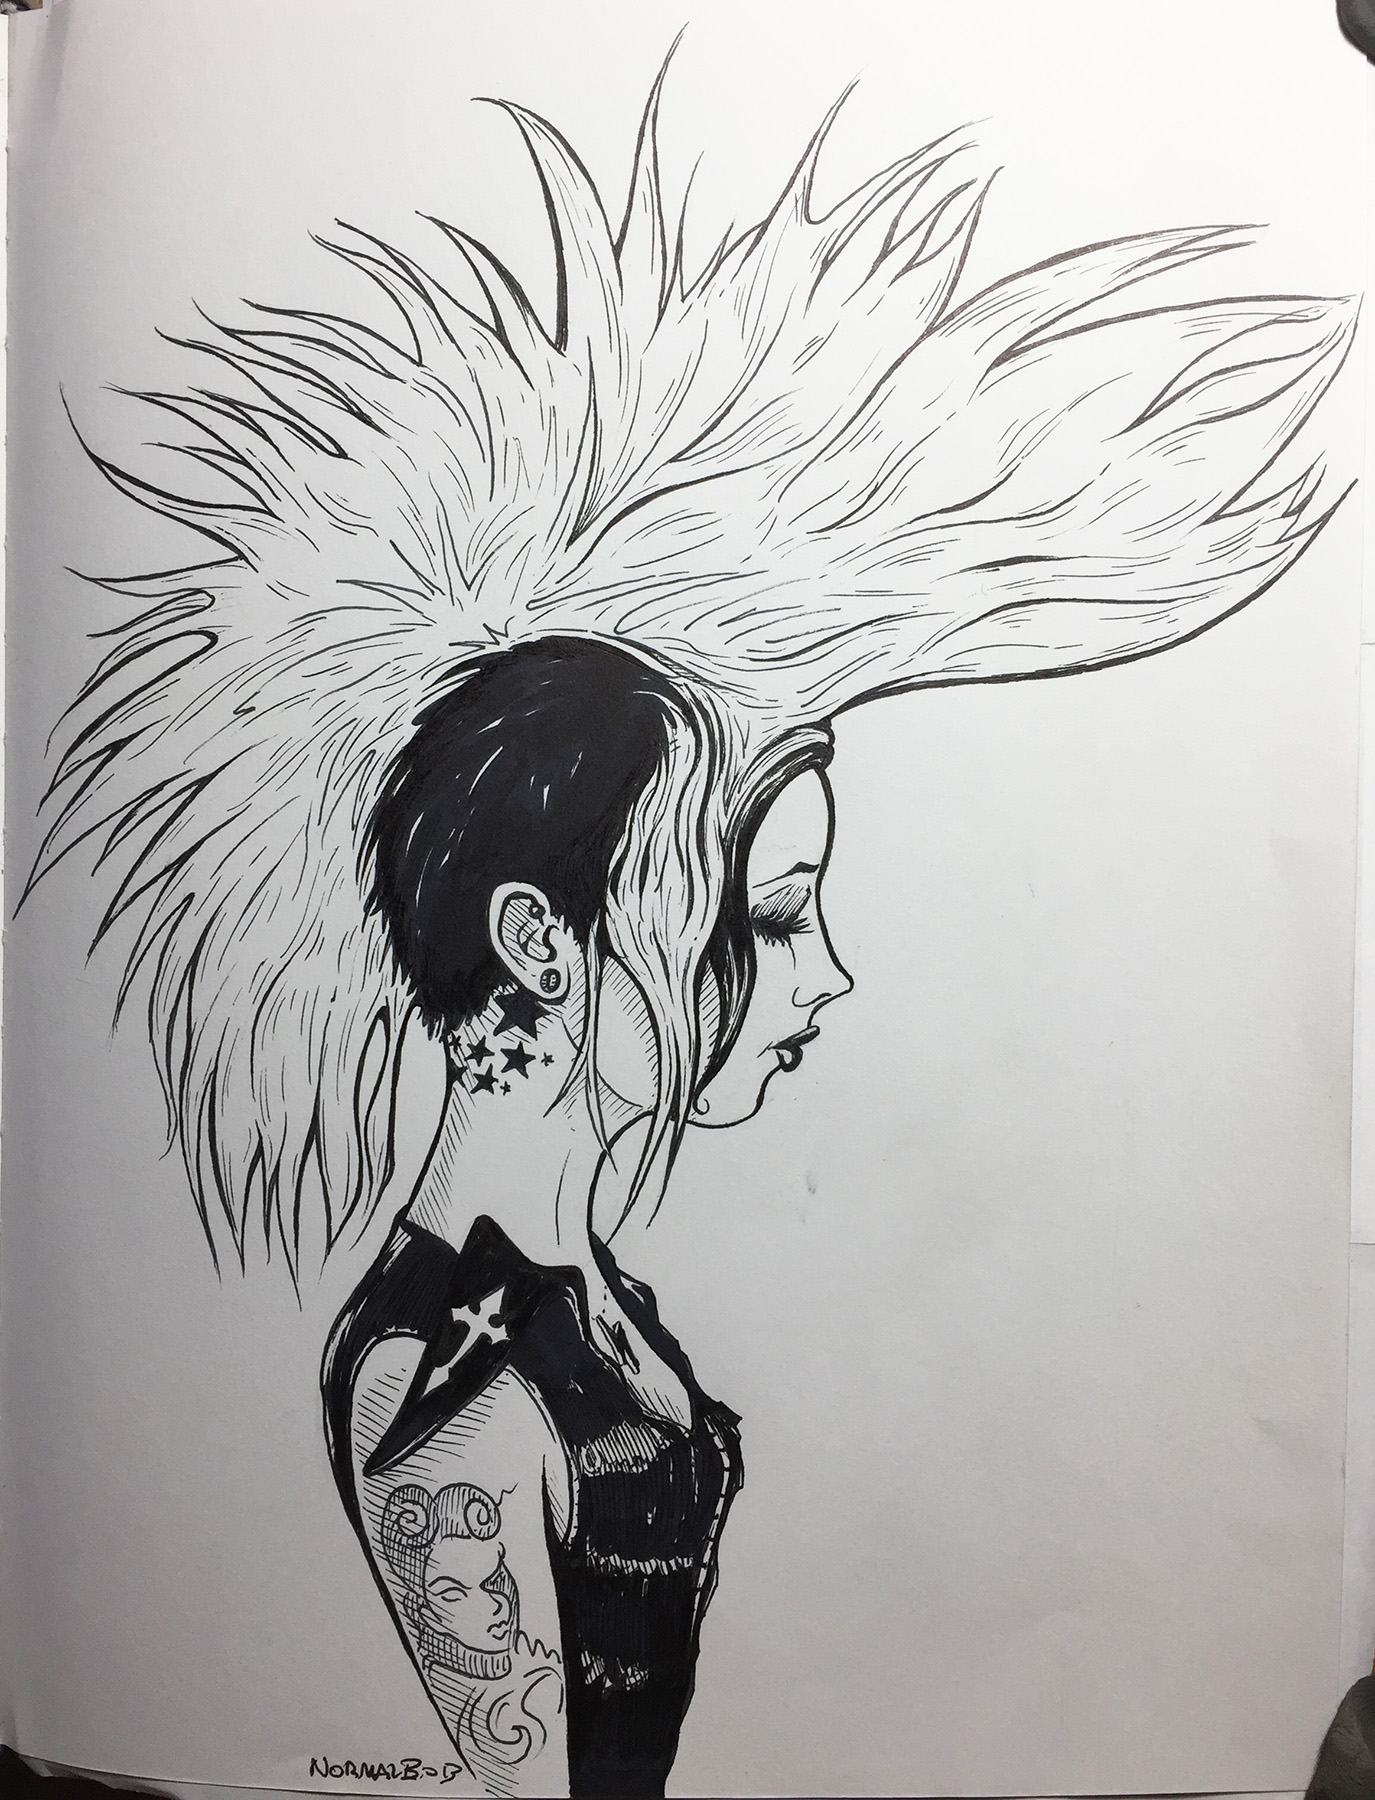 Mohawk Girl pen & ink